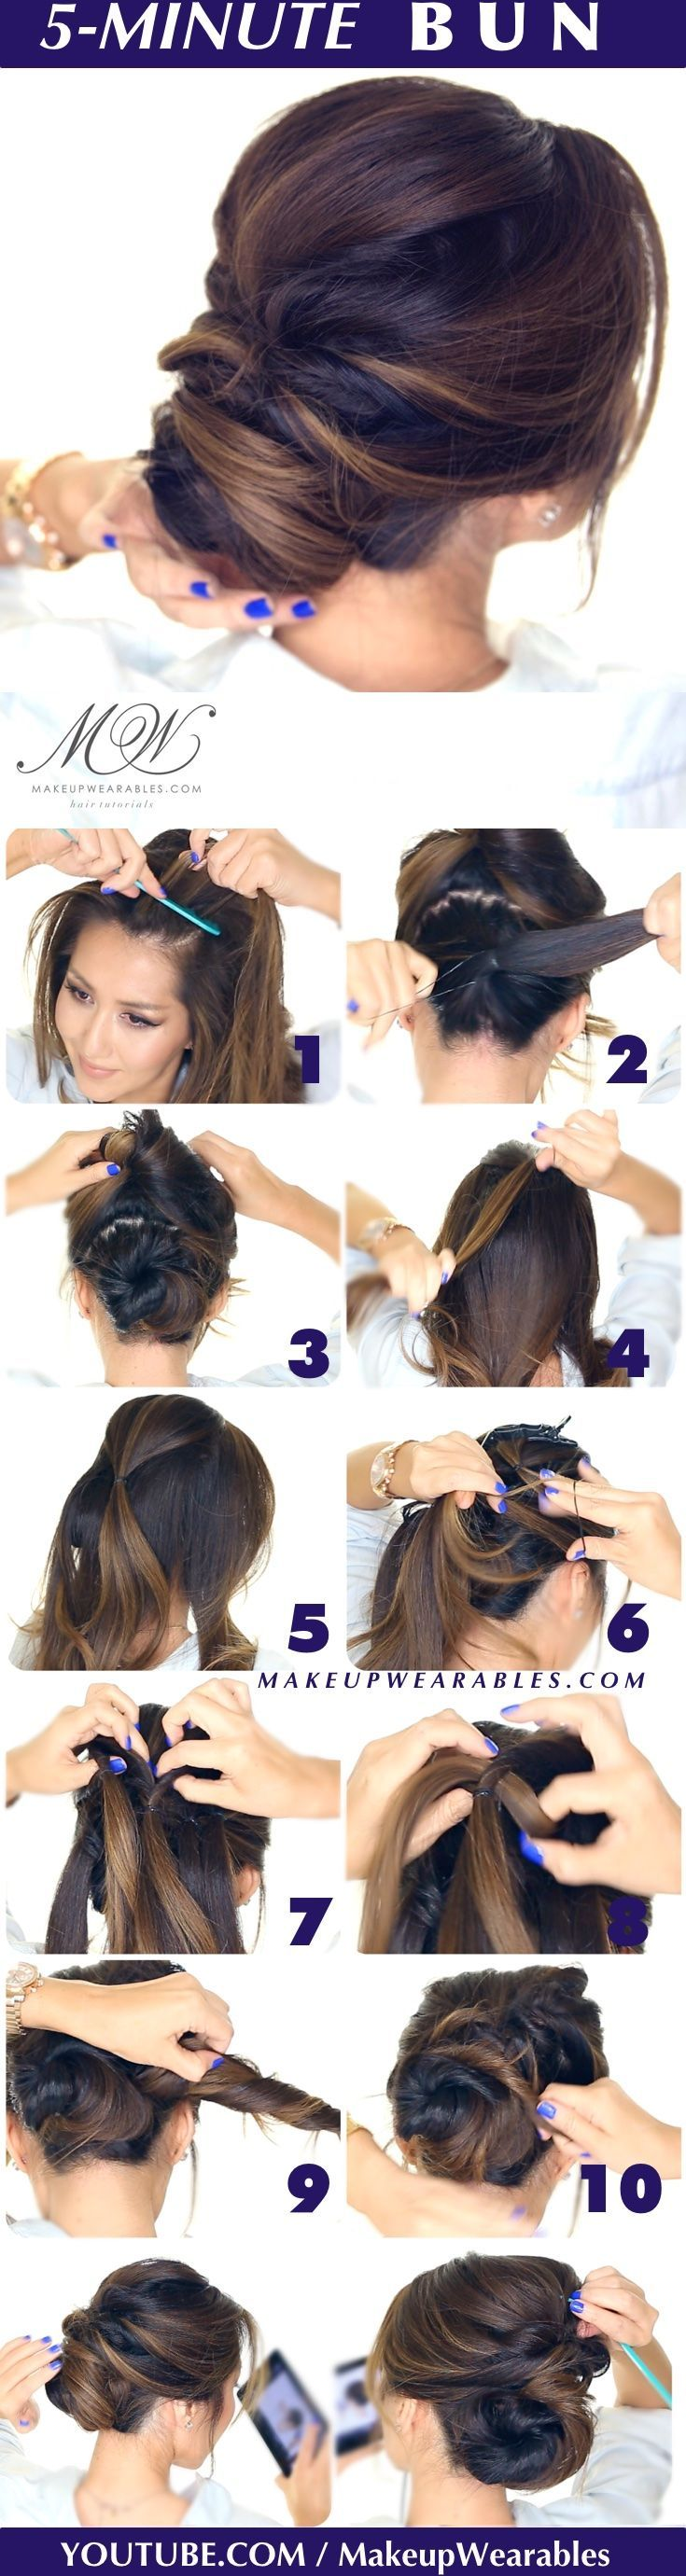 hair tutorial - easy romantic bun hairstyle